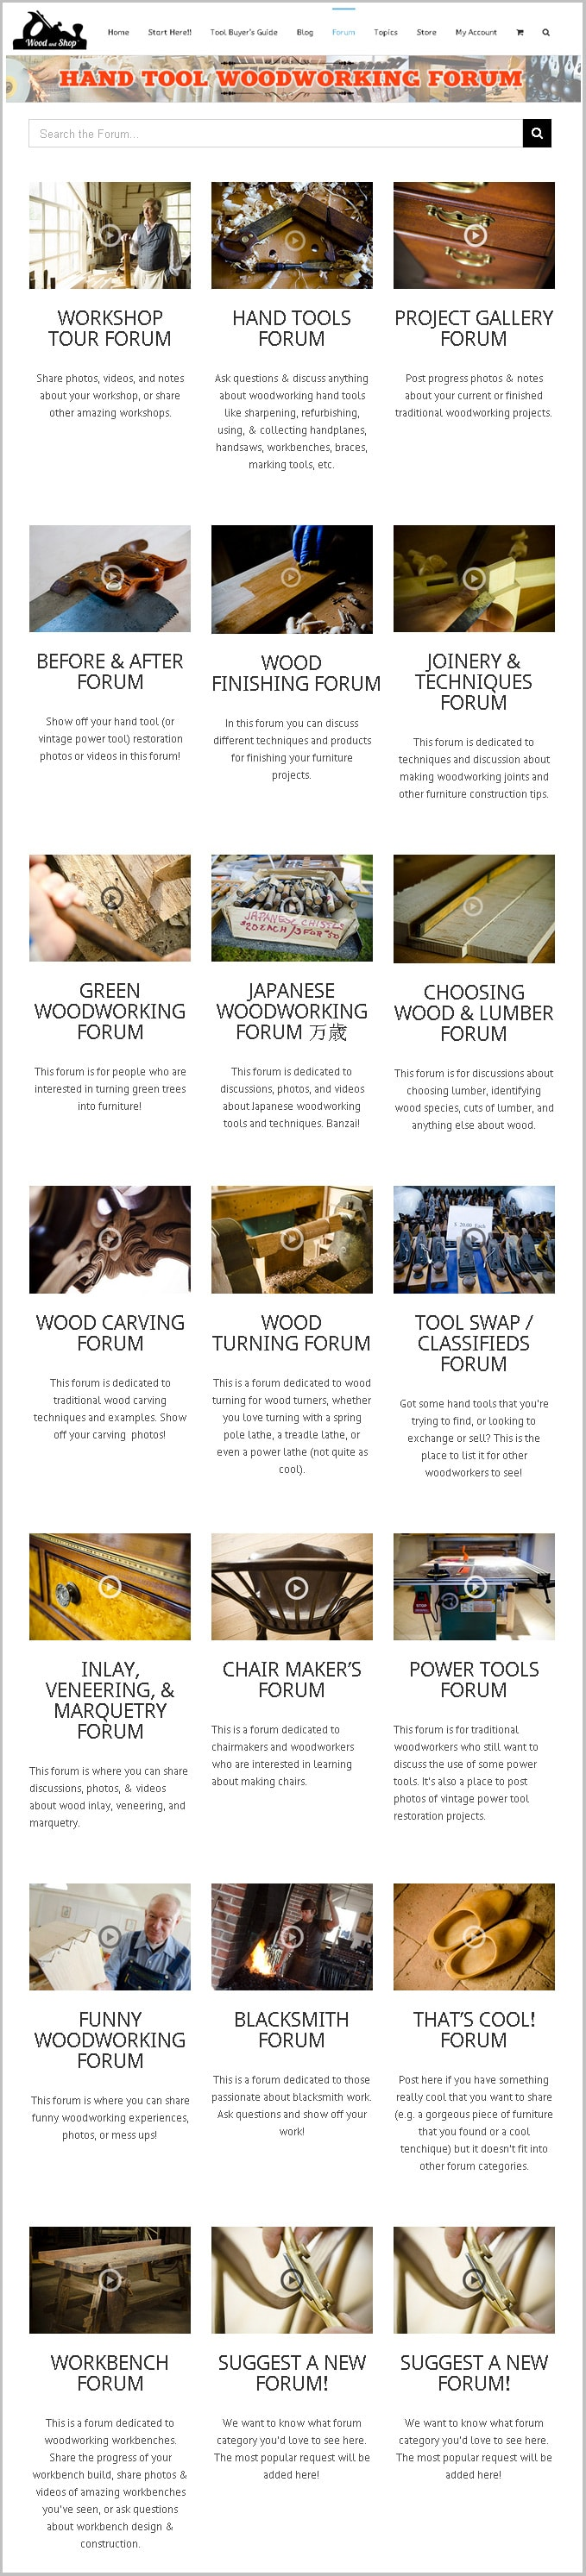 wood-and-shop-forum-home-page-categories-web-borders